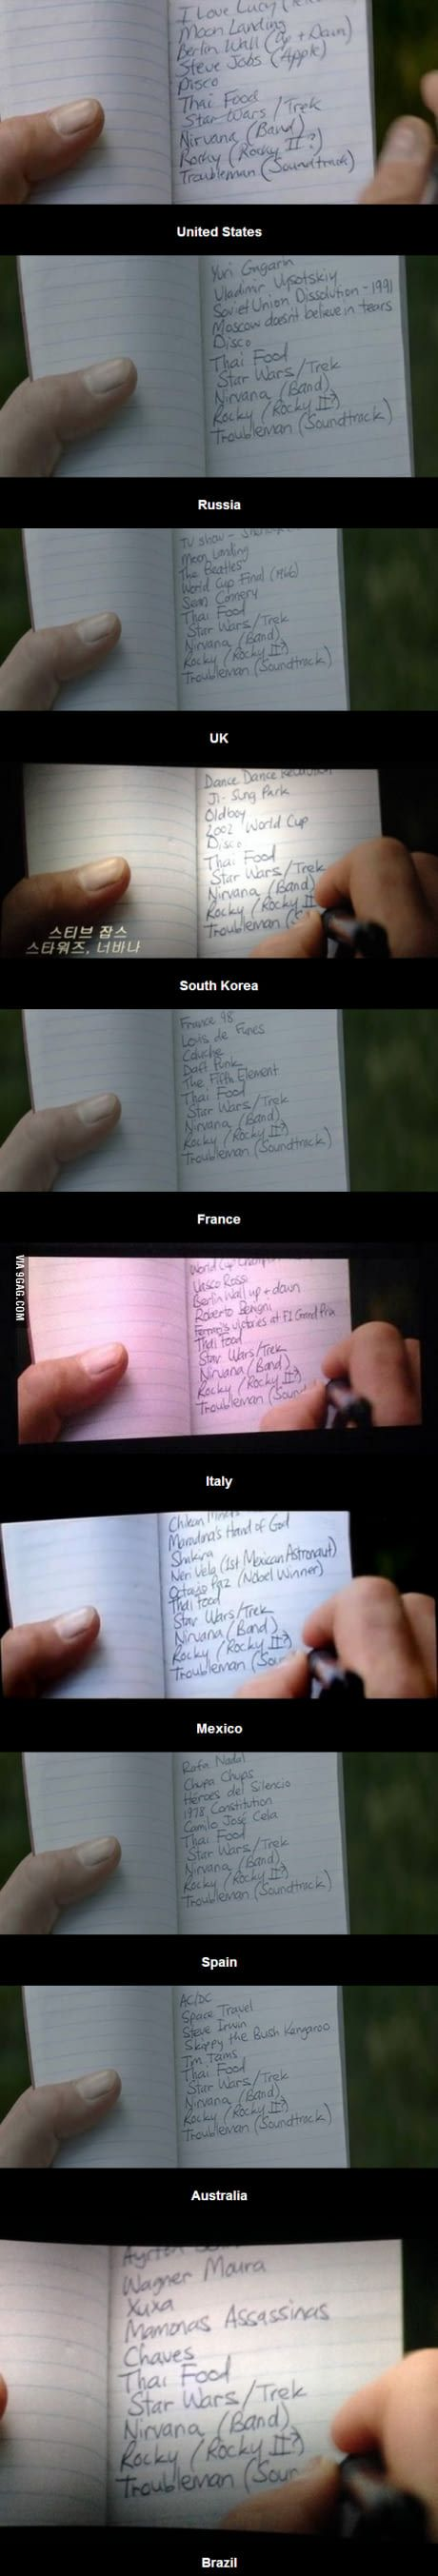 Captain America's notebook: The list of things he missed while frozen was different in different countries.